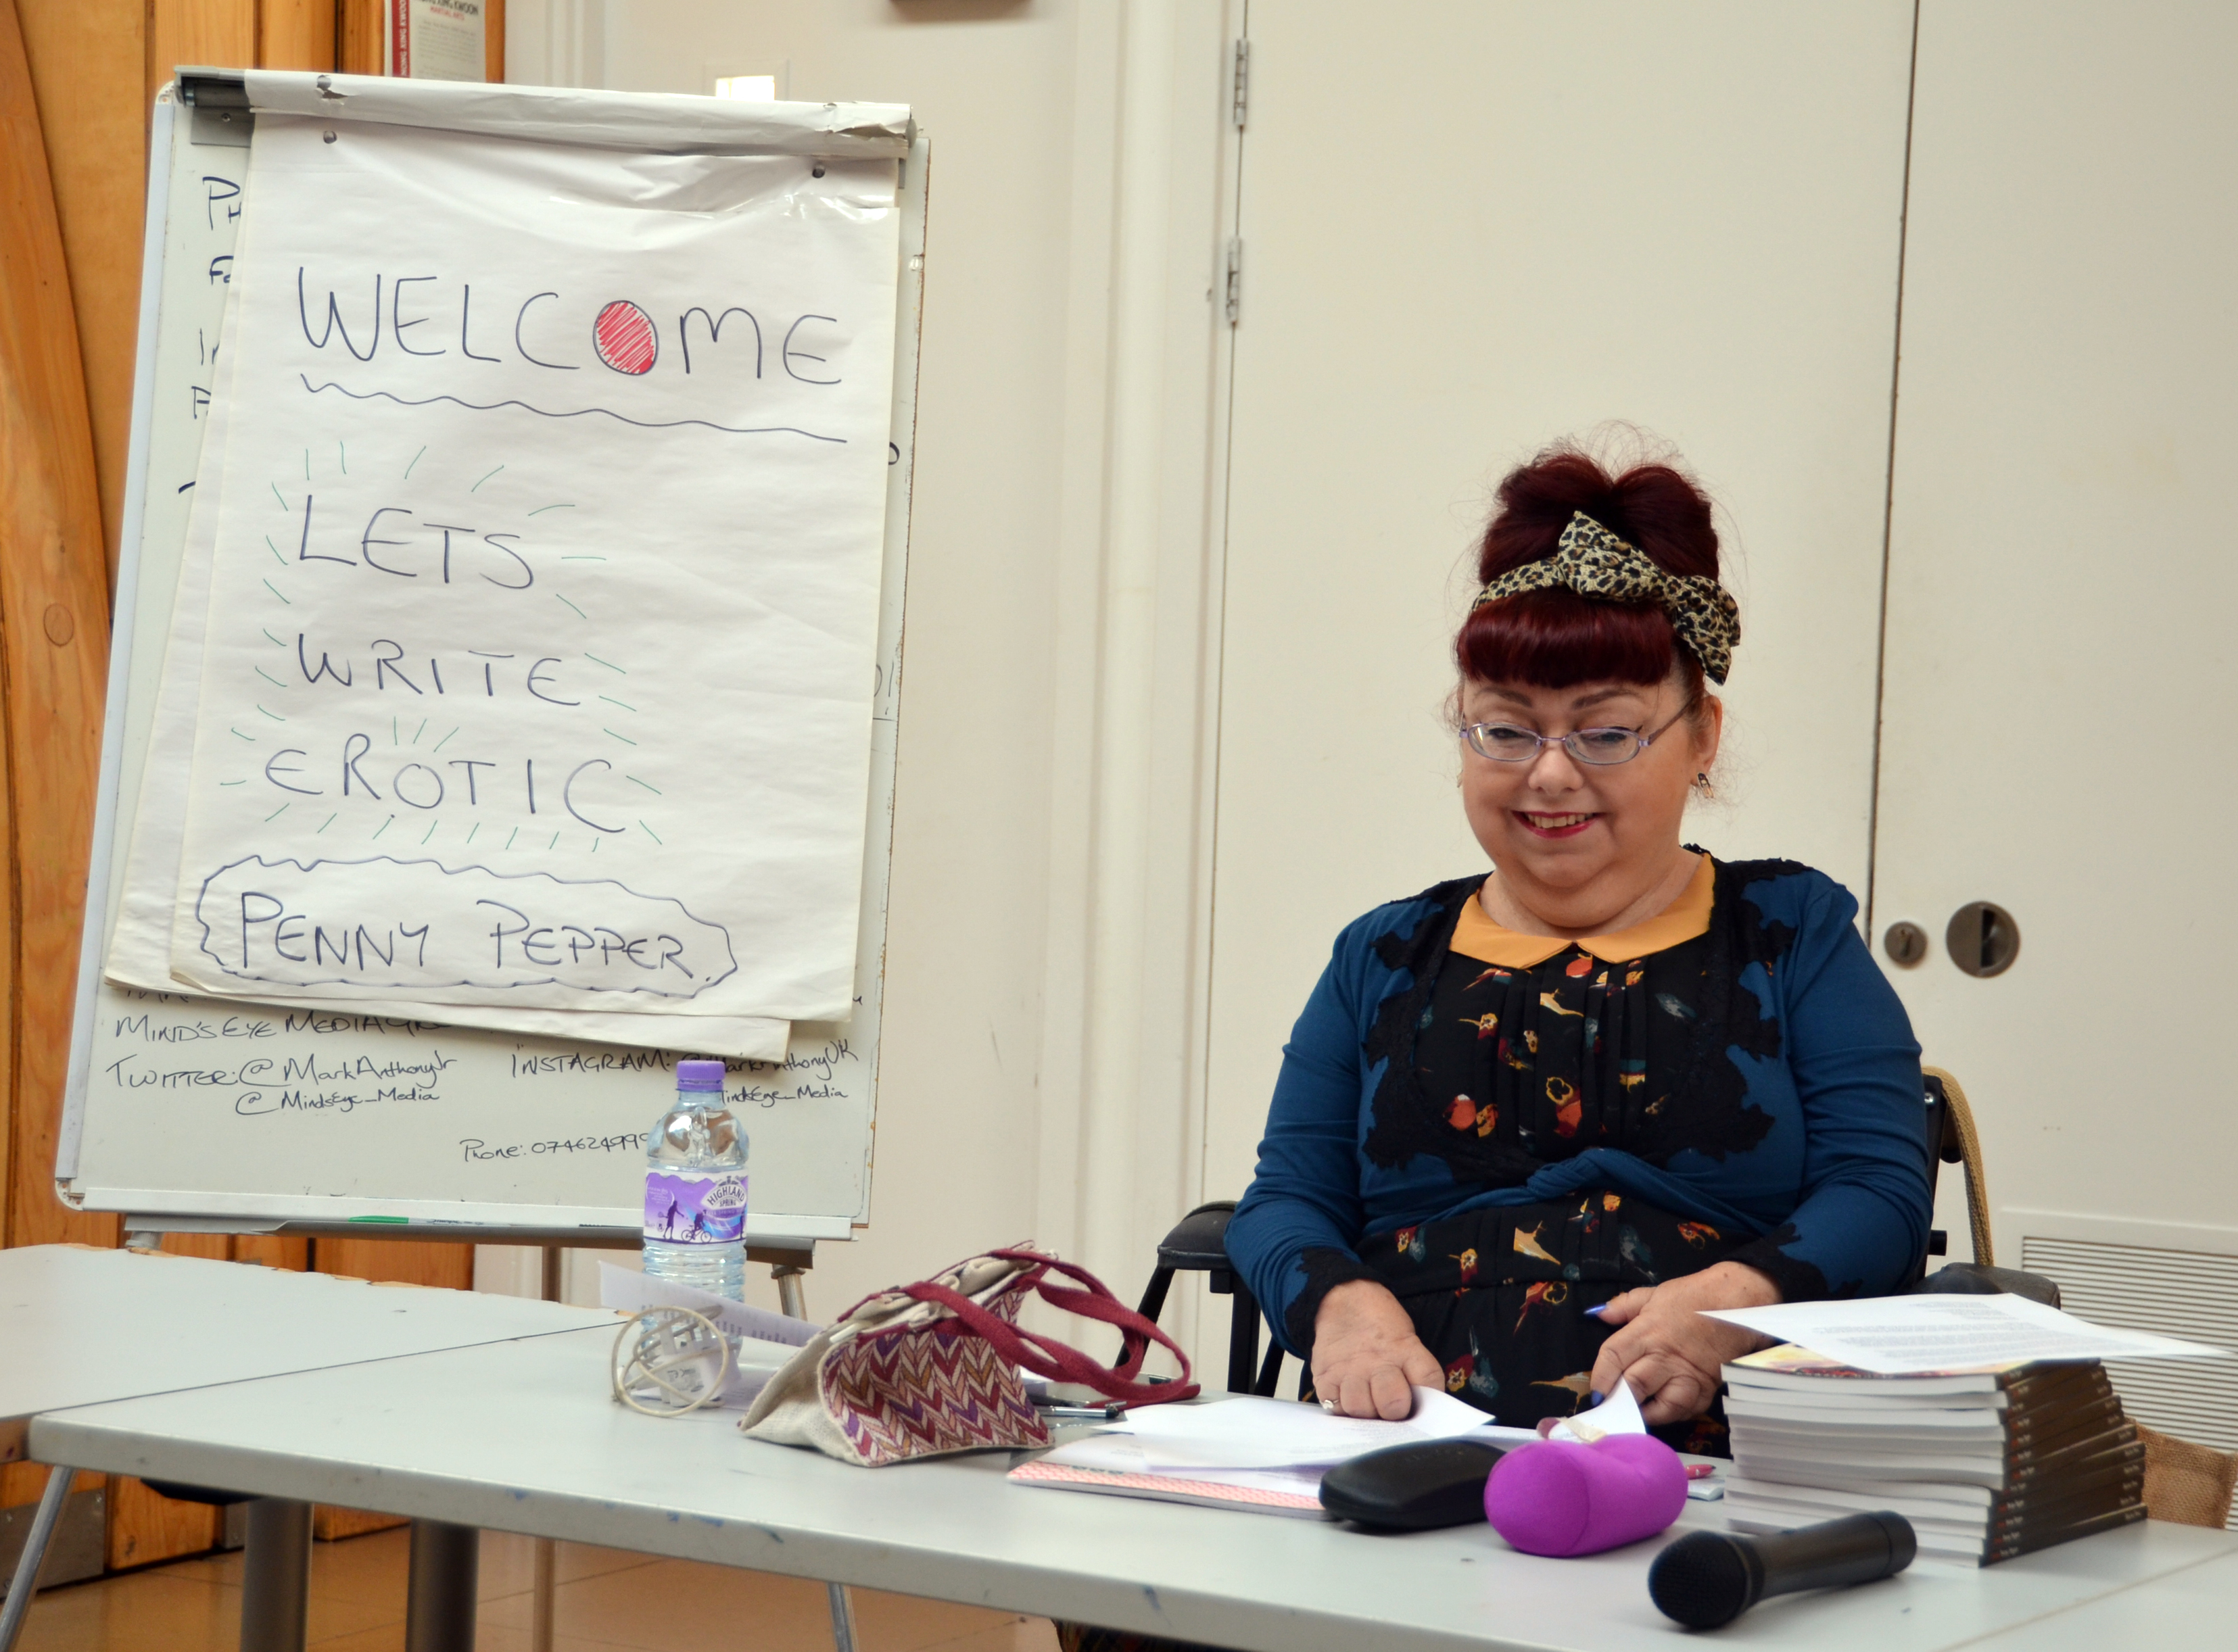 Penny Pepper leads the erotic writing workshop at the Hub in August 2015